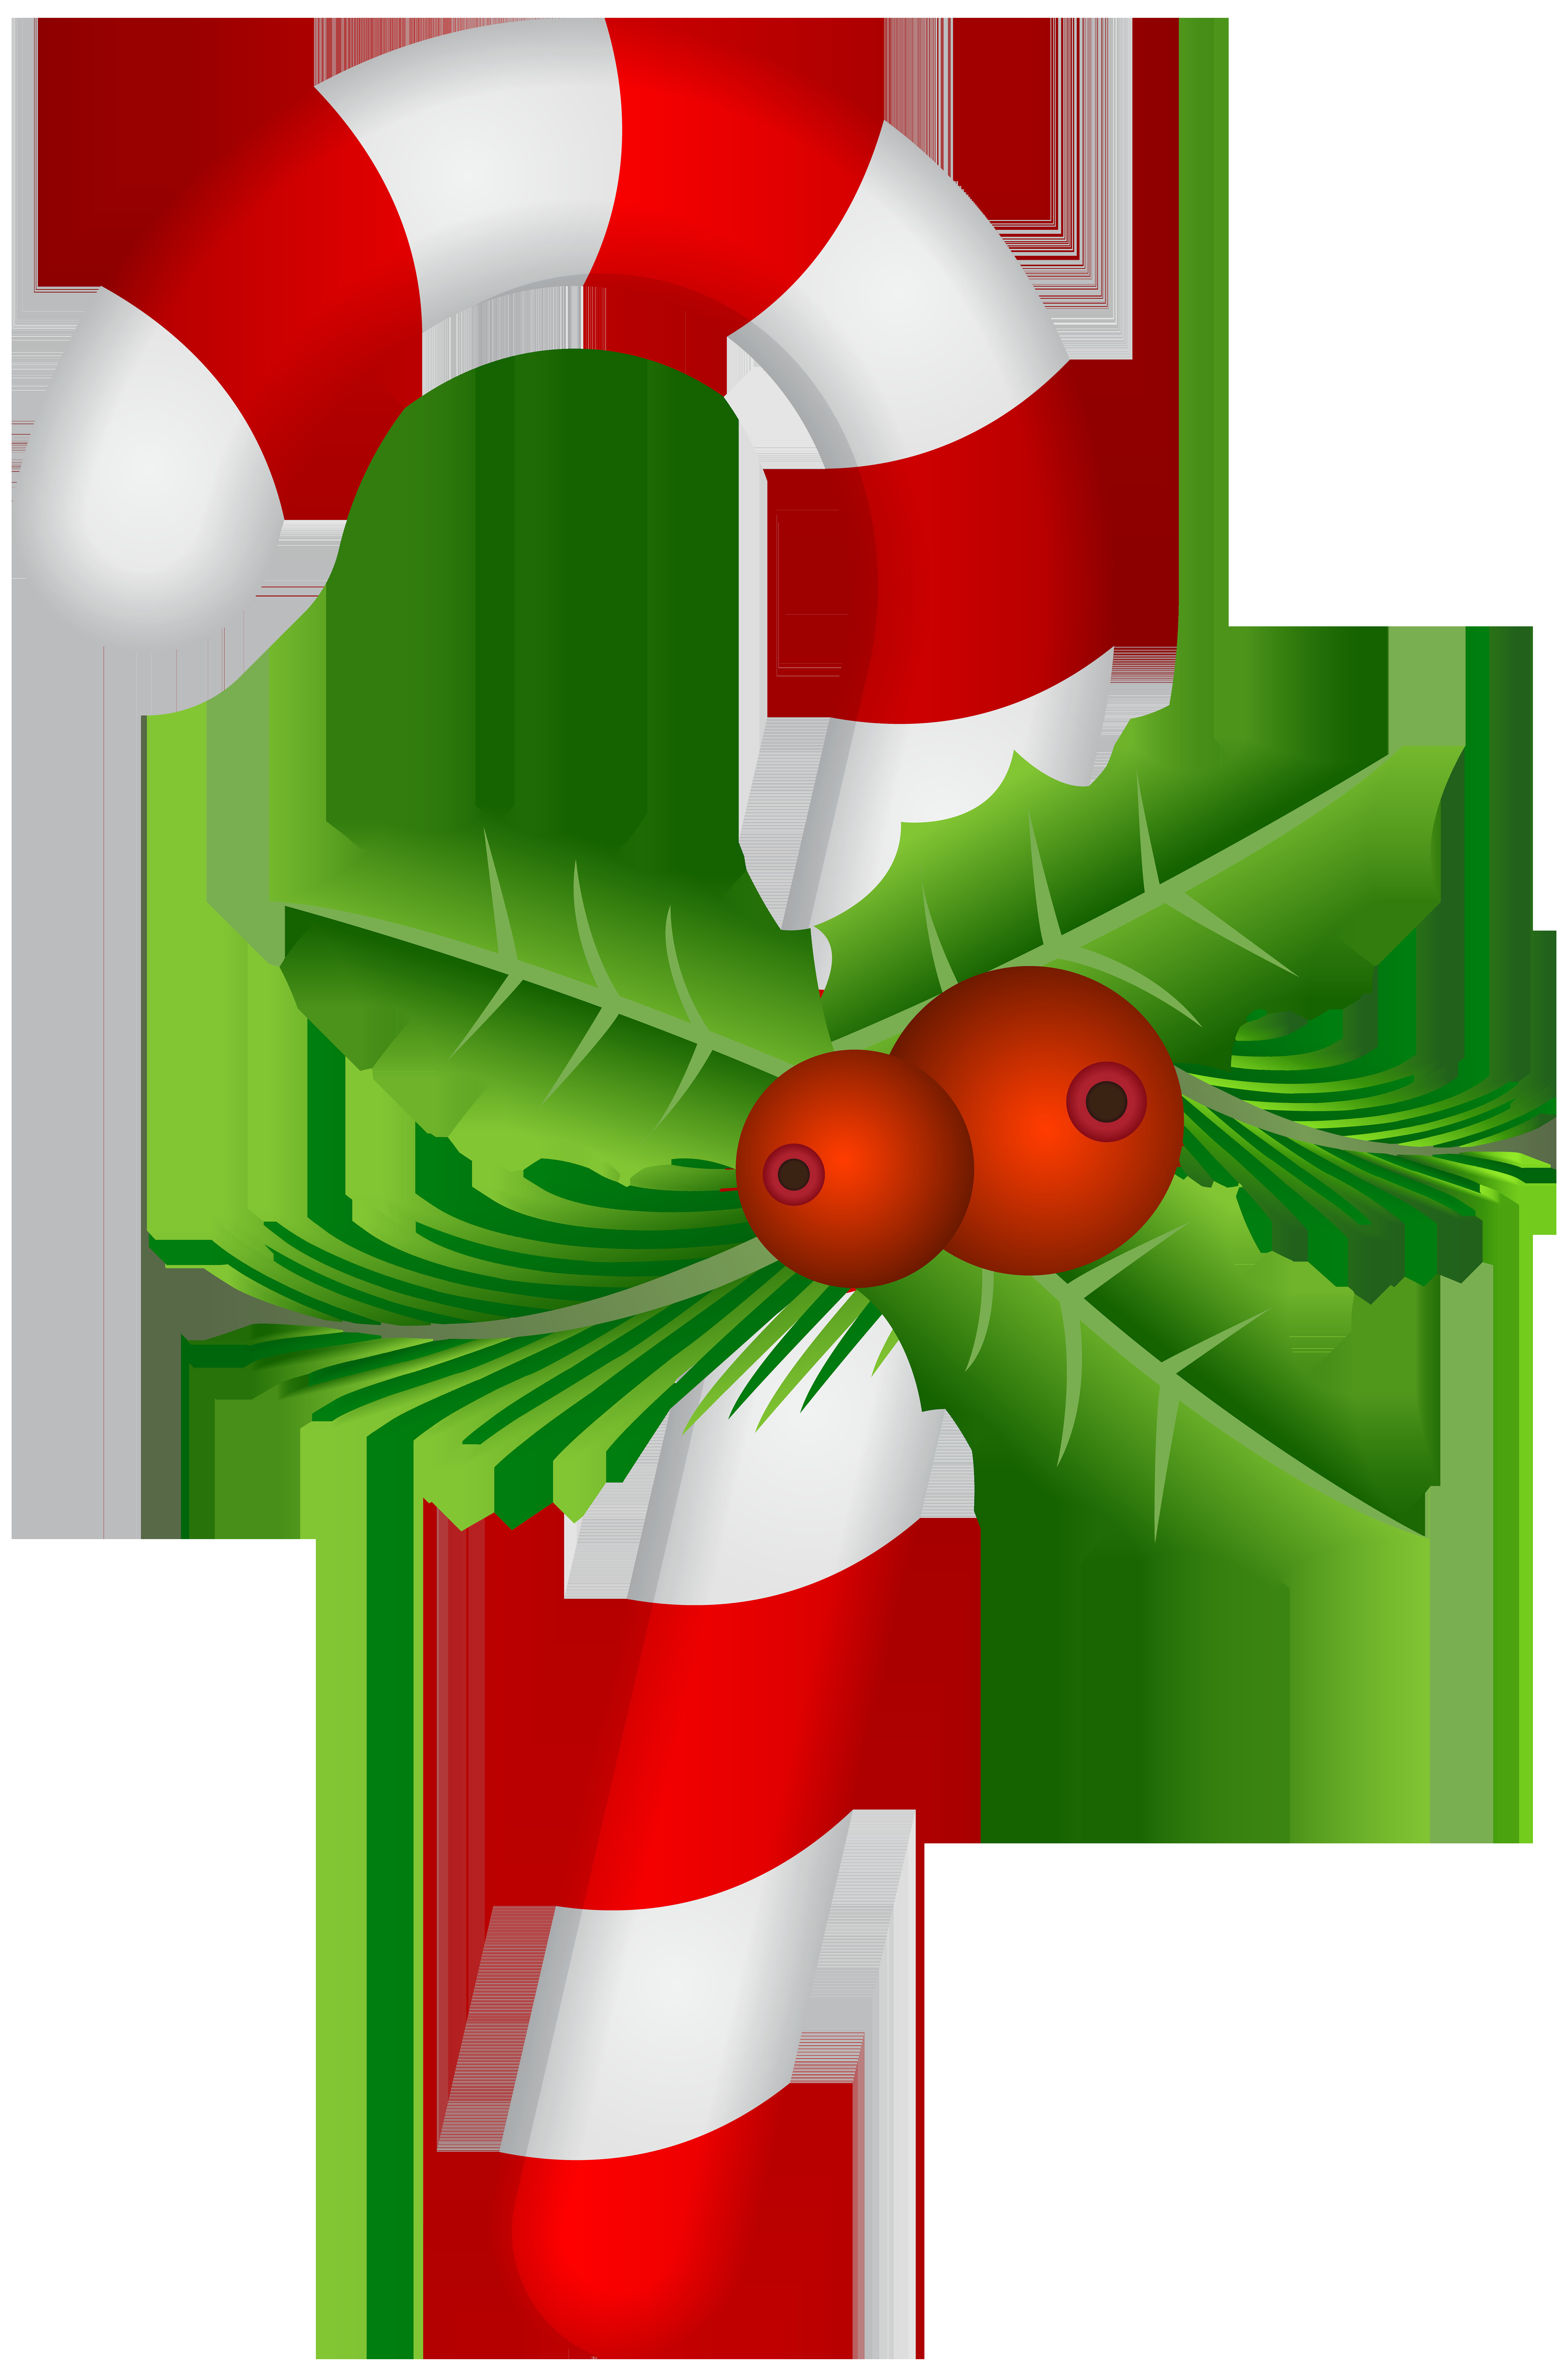 Christmas Candy Cane  Candy Cane clipart christmas holly Pencil and in color